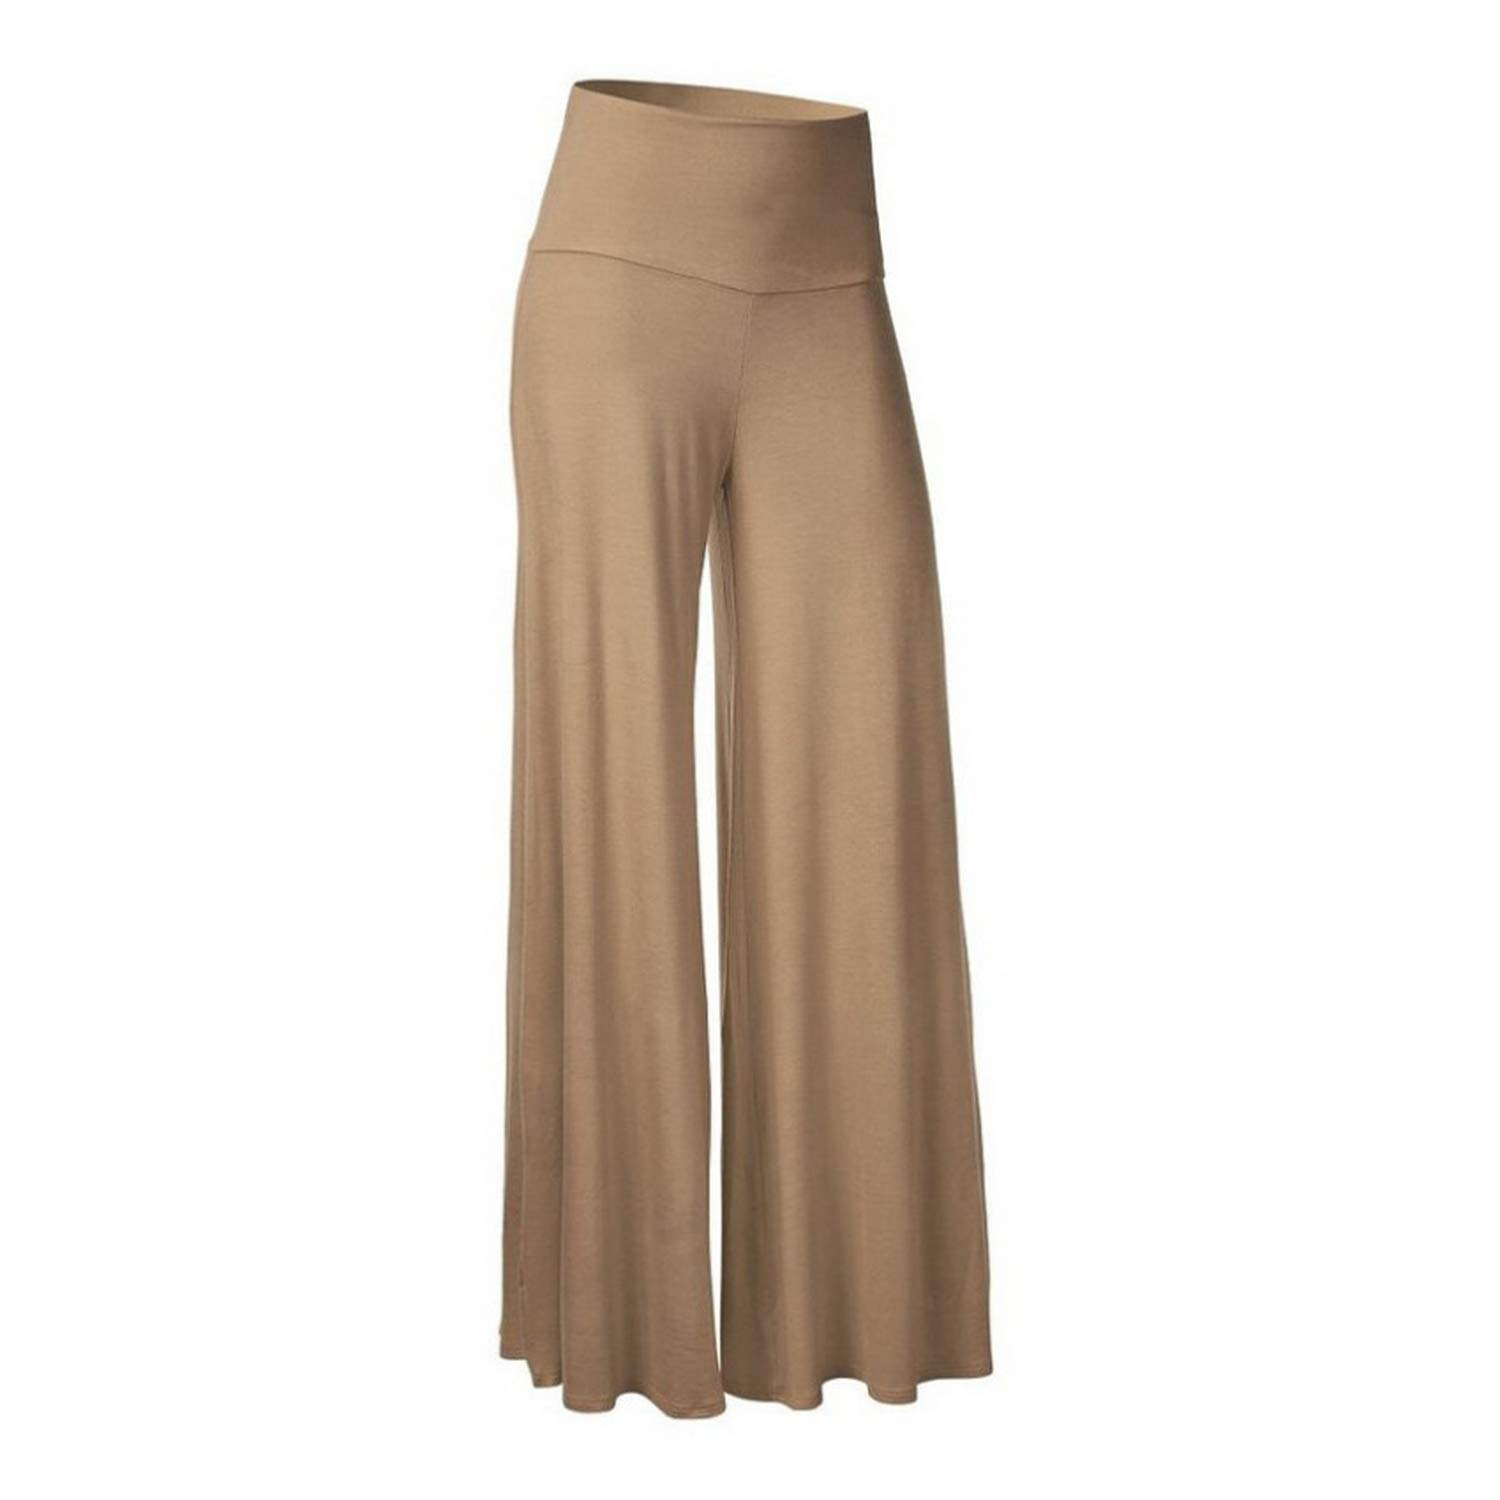 ZFADDS Solid Women Wide Leg Casual Loose Palao Trousers Elegant High Waist Pants 8 Colors Ladies